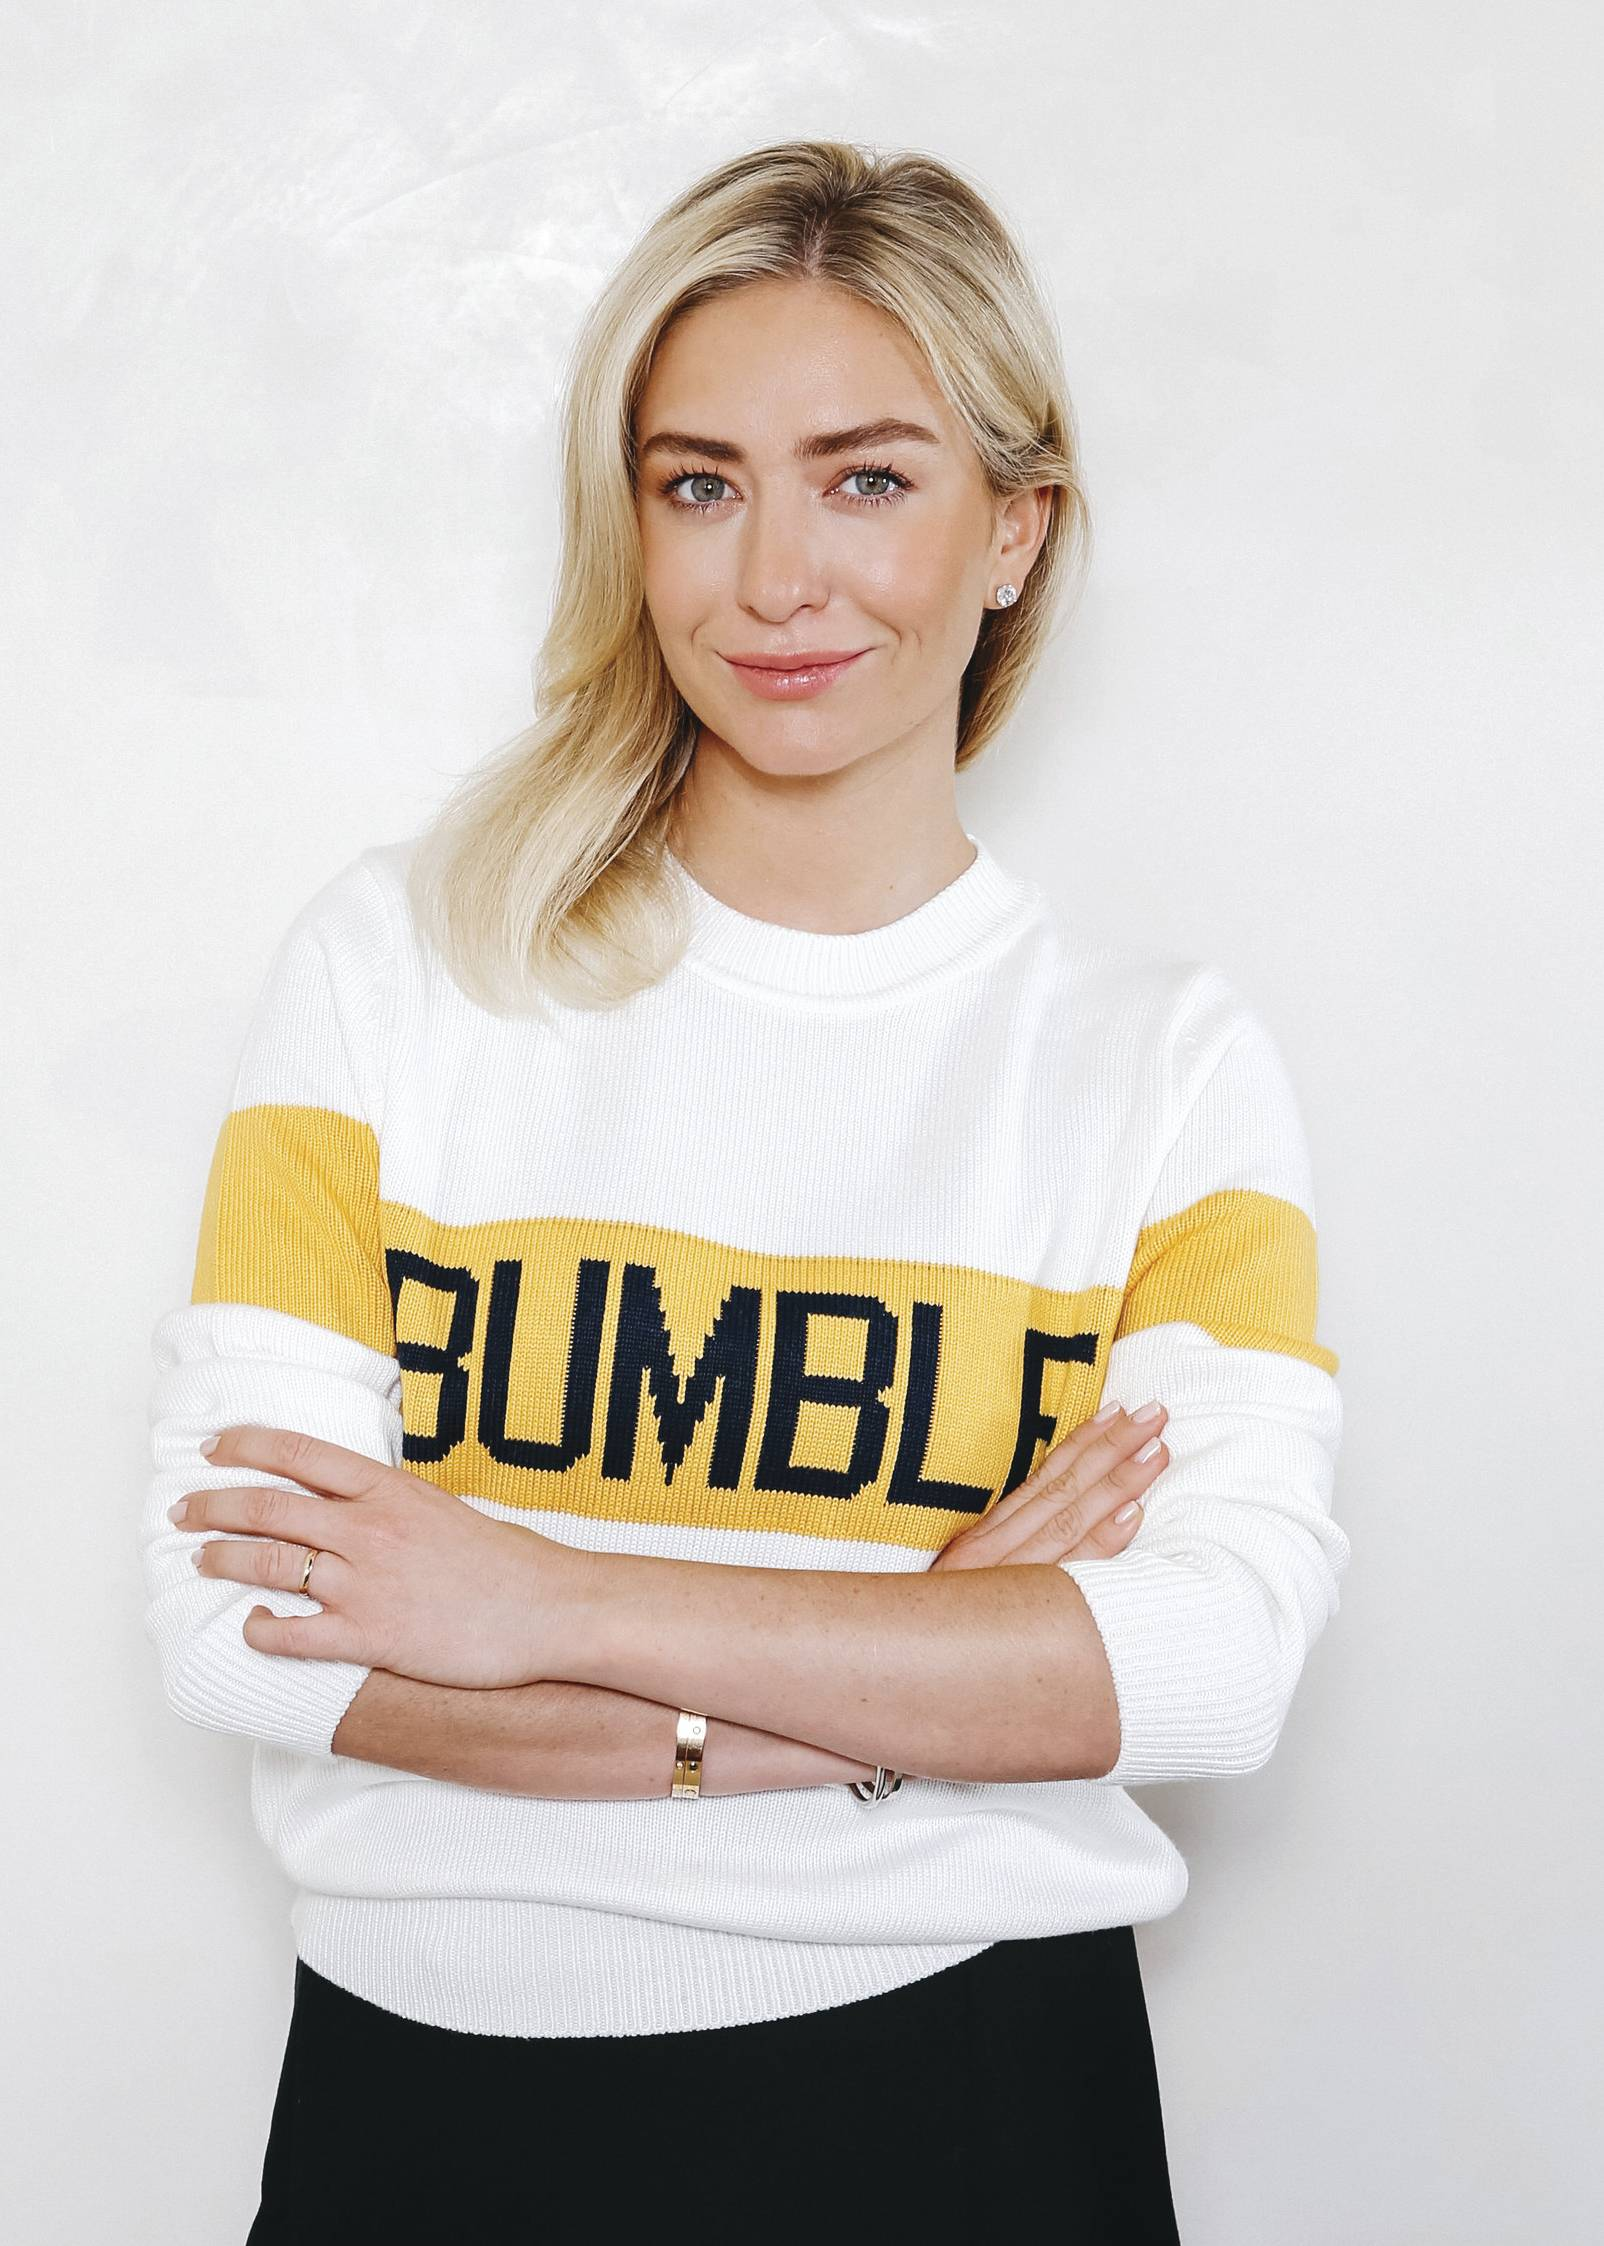 Whitney Wolf Herd founder of Bumble